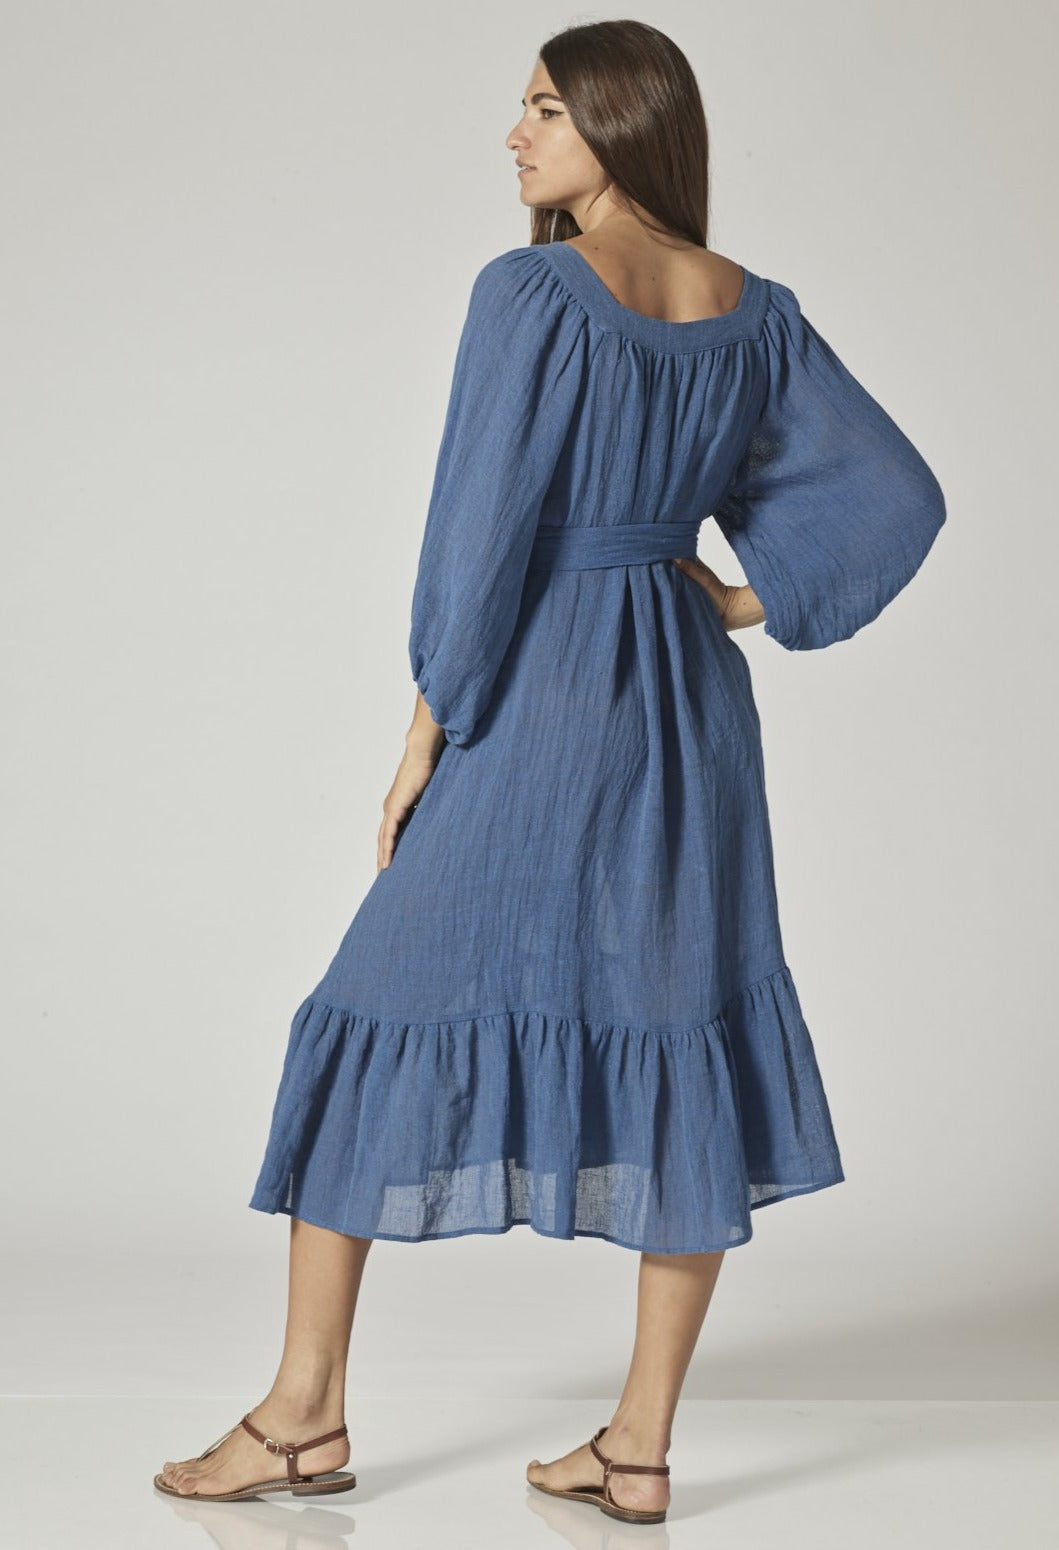 LAURE MOROCCAN BLUE ORGANIC GAUZE DRESS